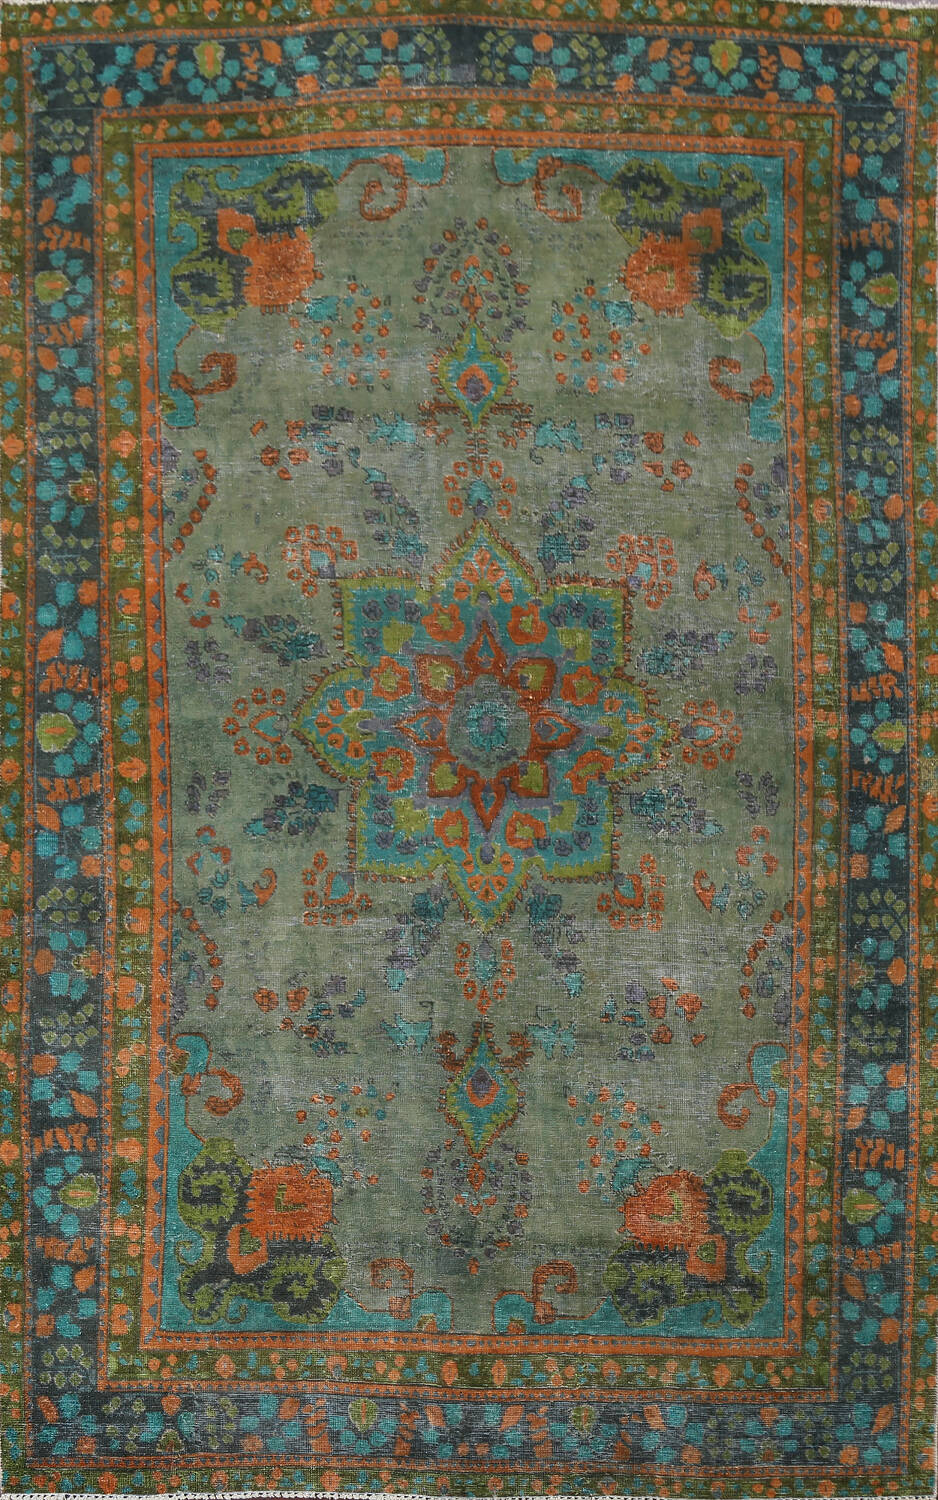 Antique Over-Dyed Distressed Tabriz Persian Area Rug 6x9 image 1